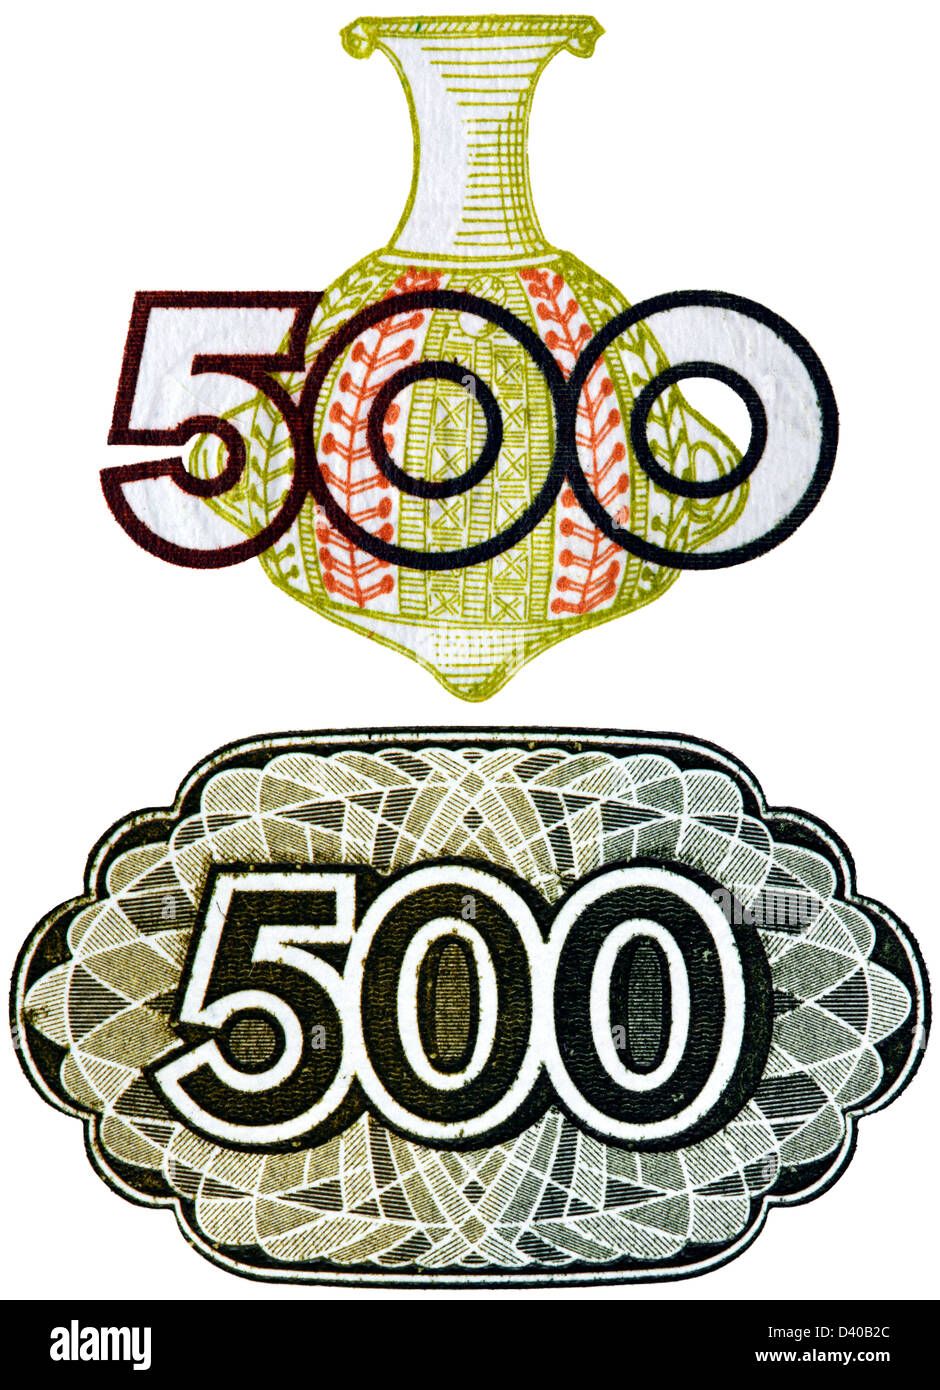 Number 500 from 500 Intis banknote, Peru, 1987, on white background - Stock Image